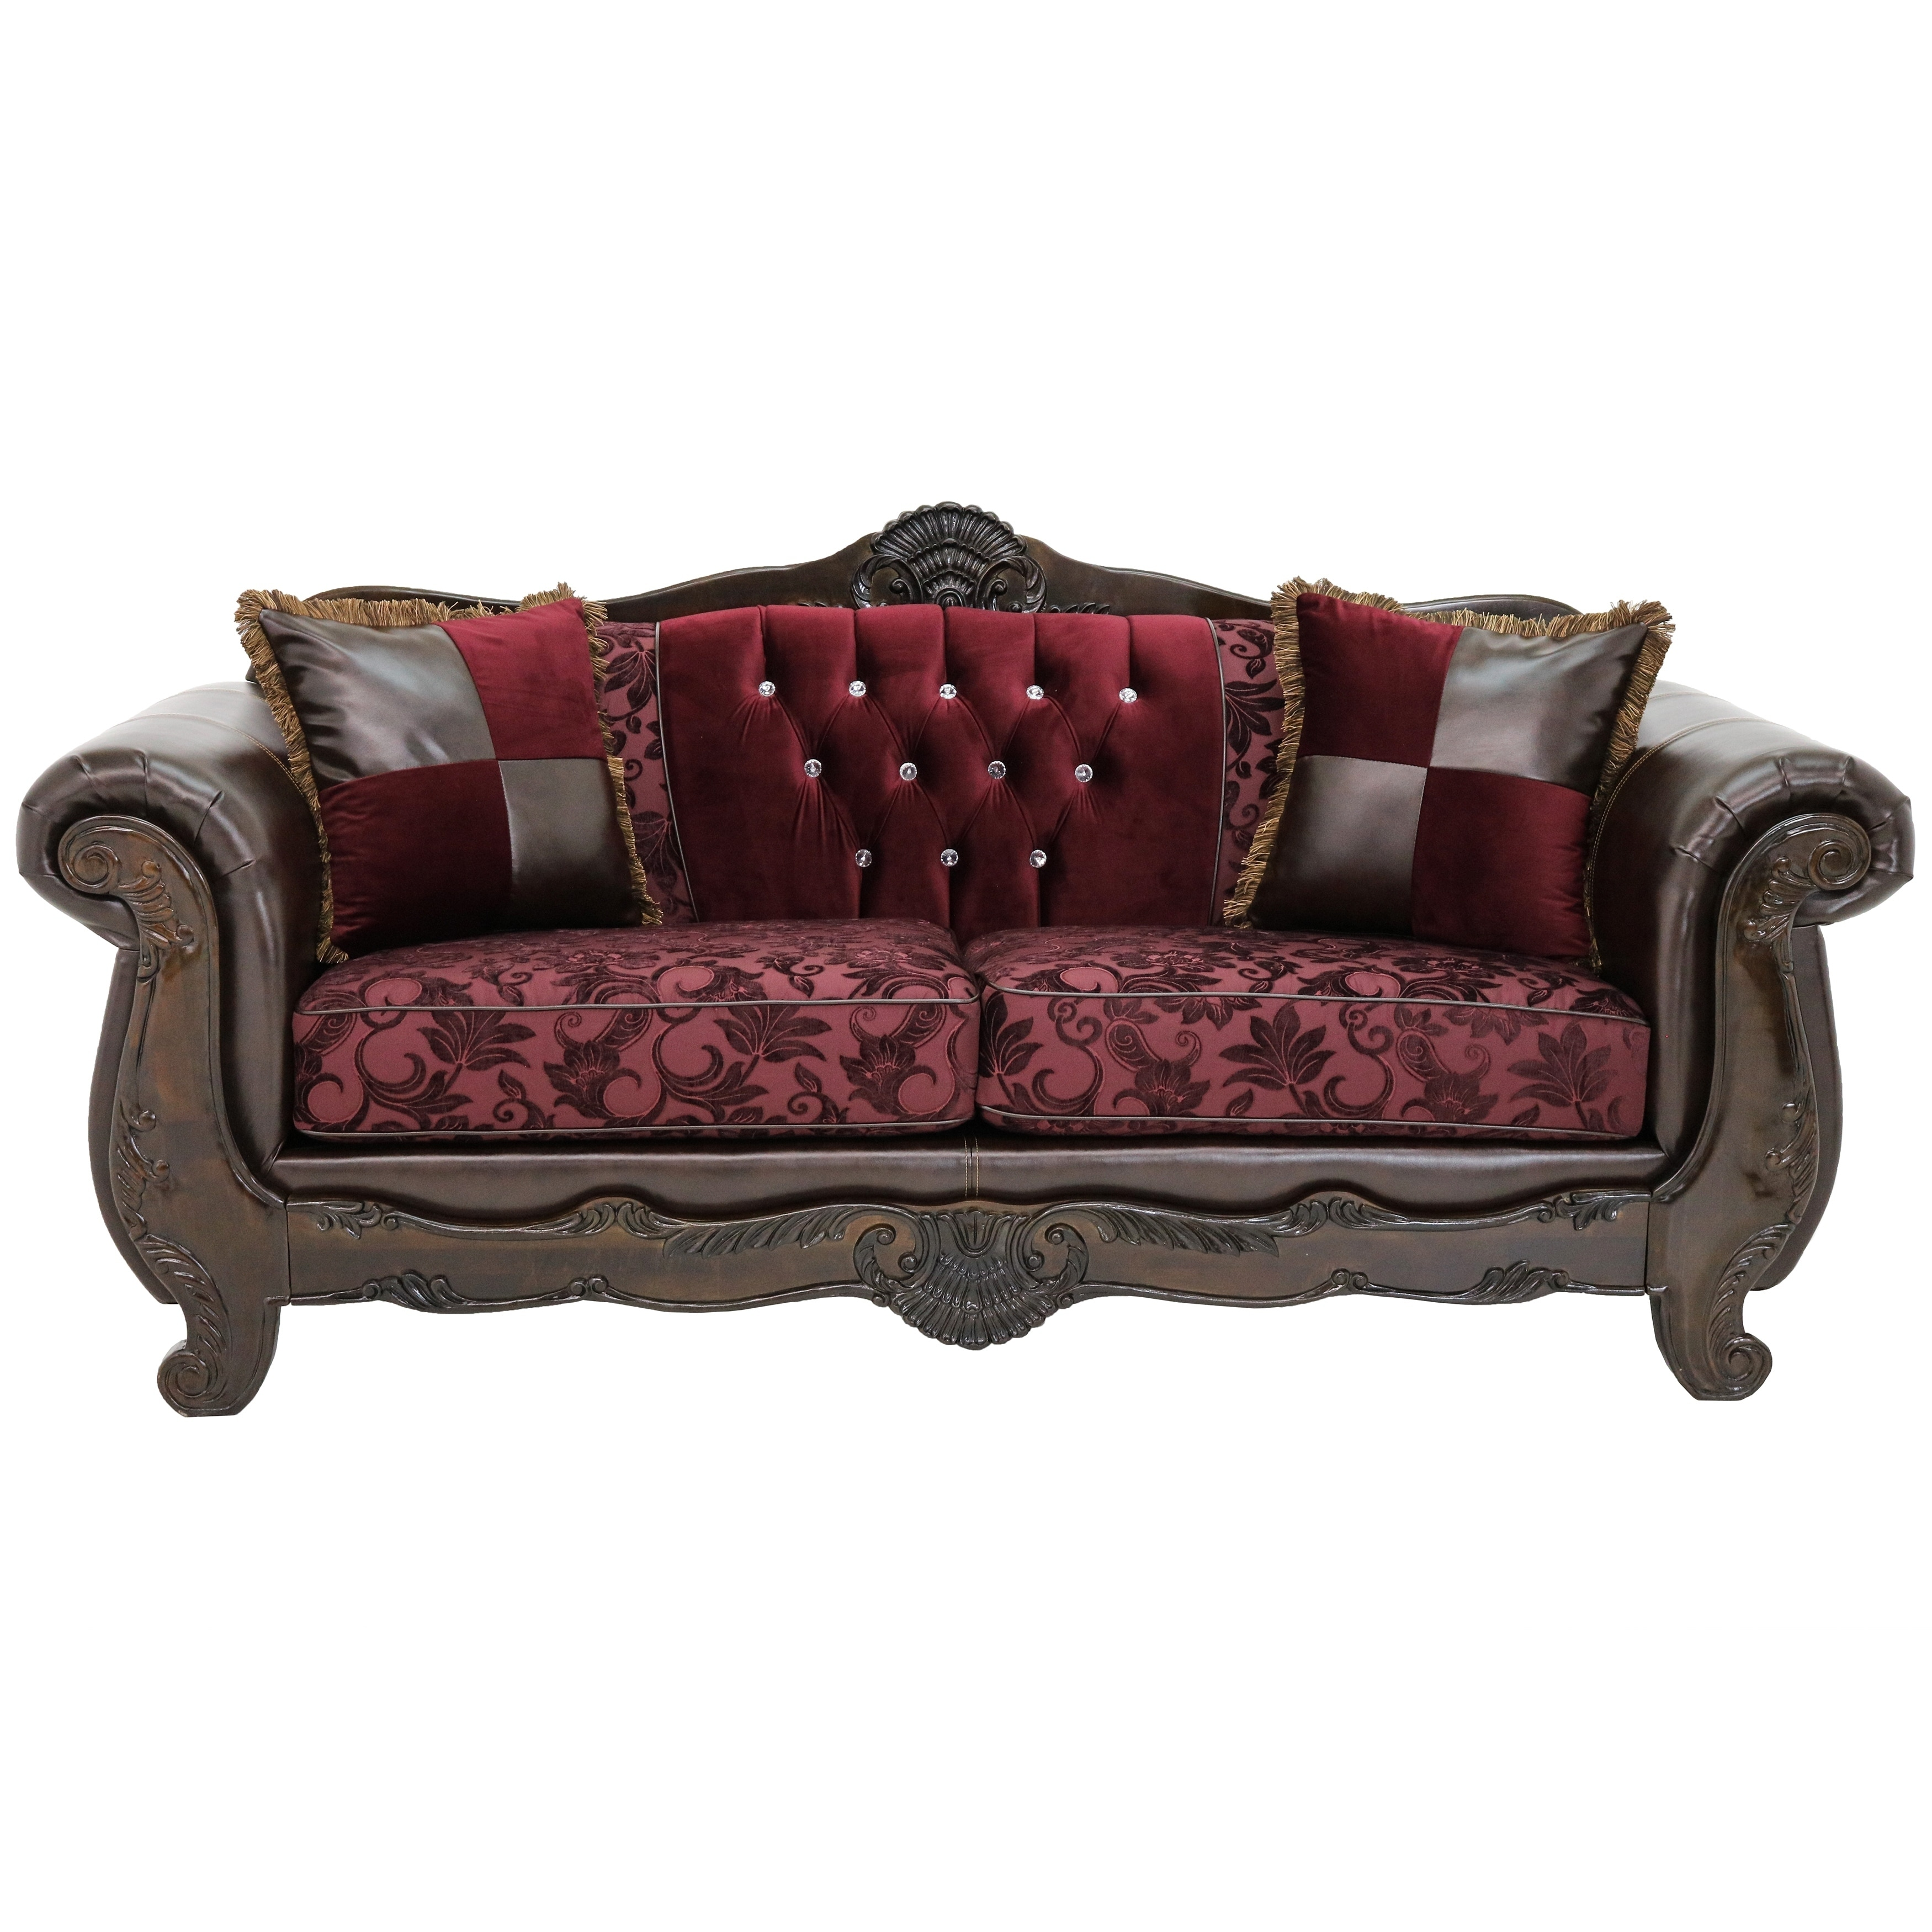 Attrayant Shop Palace Traditional Red Velvet And Brown Leather Upholstered Living  Room Sofa Set   Free Shipping Today   Overstock.com   19834828